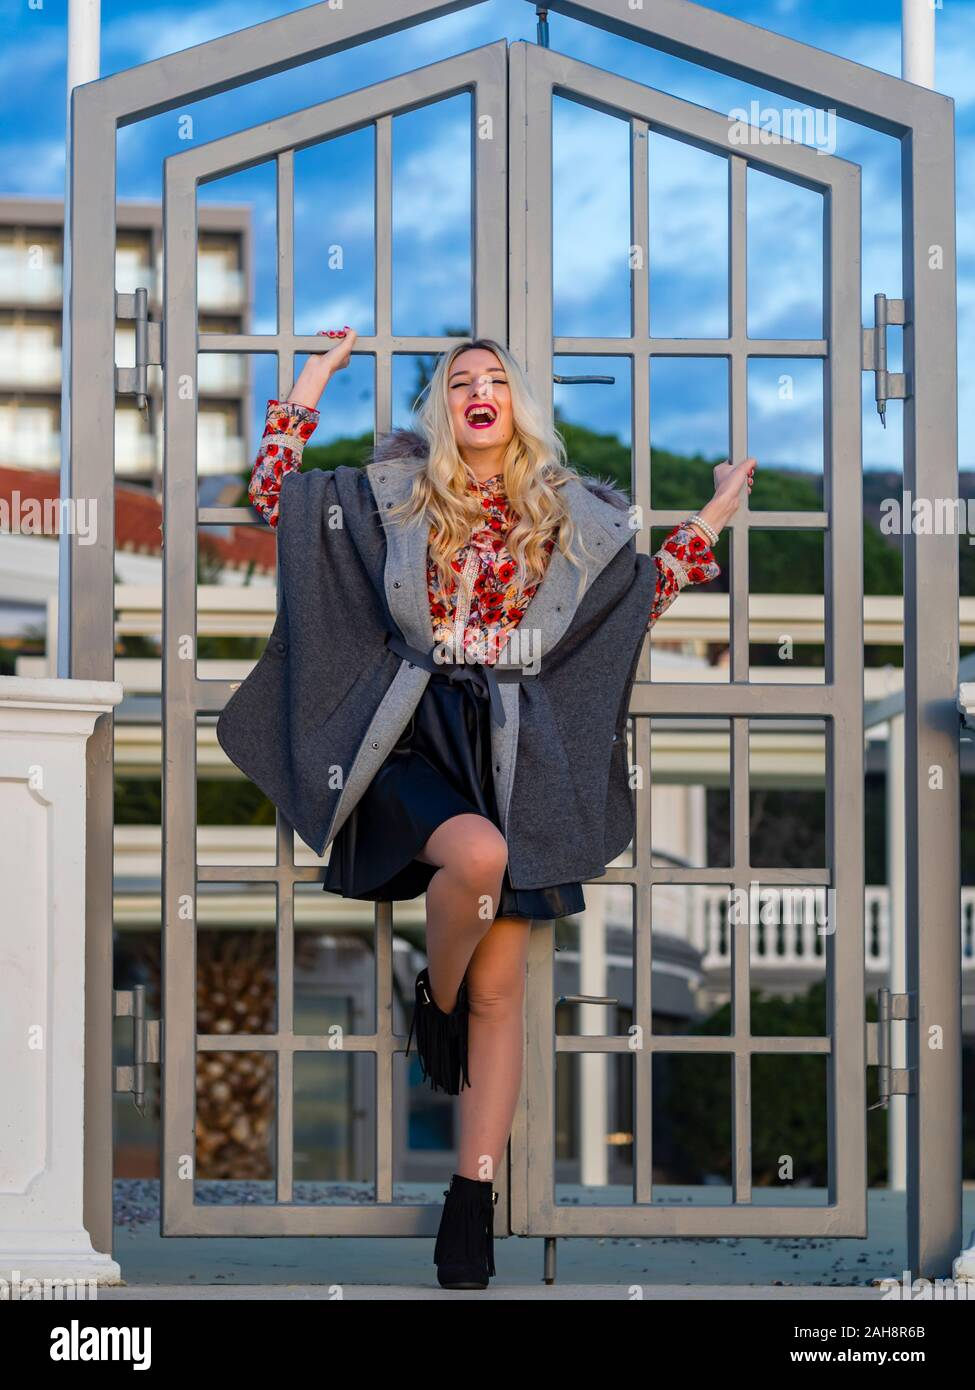 Fanciful blonde young lady spreading on metal fence door entrance looking at camera eyeshot eyes eye-contact hilarious laughing Stock Photo